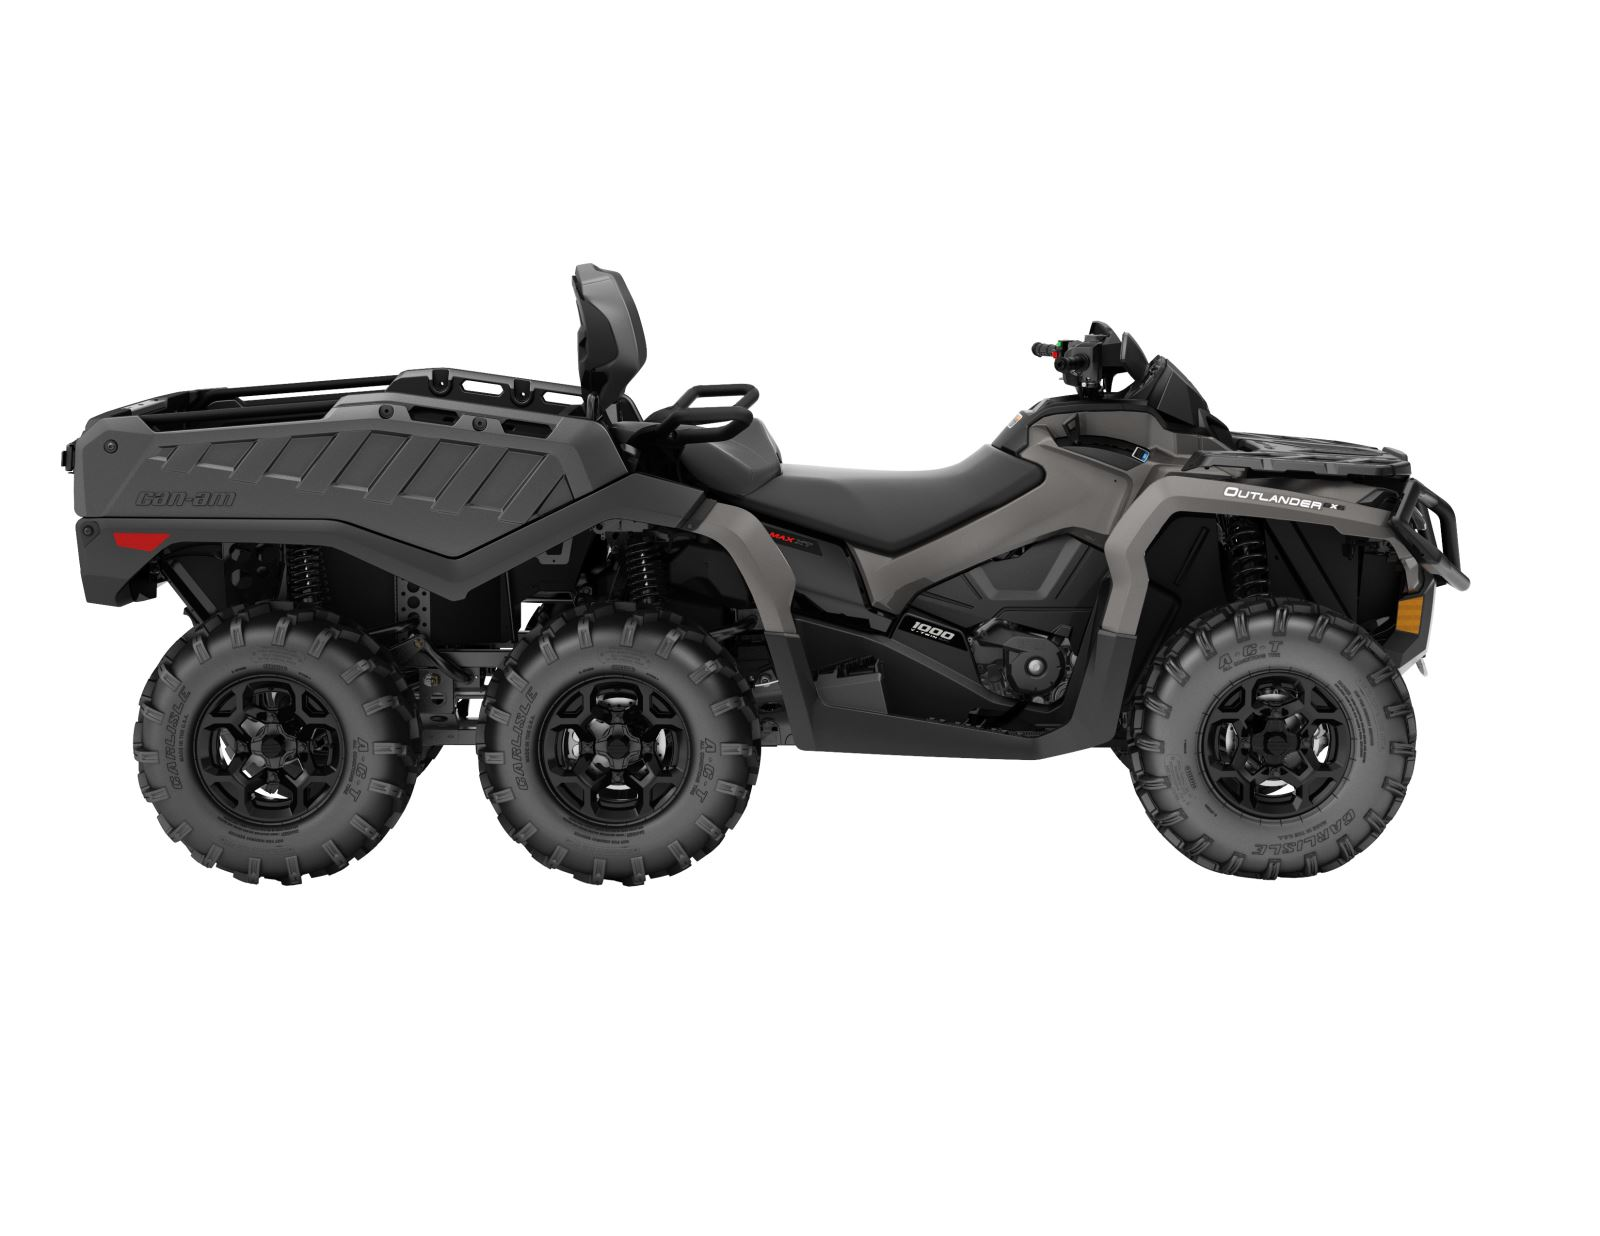 Details On 2019 Can Am Outlander Family Part 3 One Of The Most